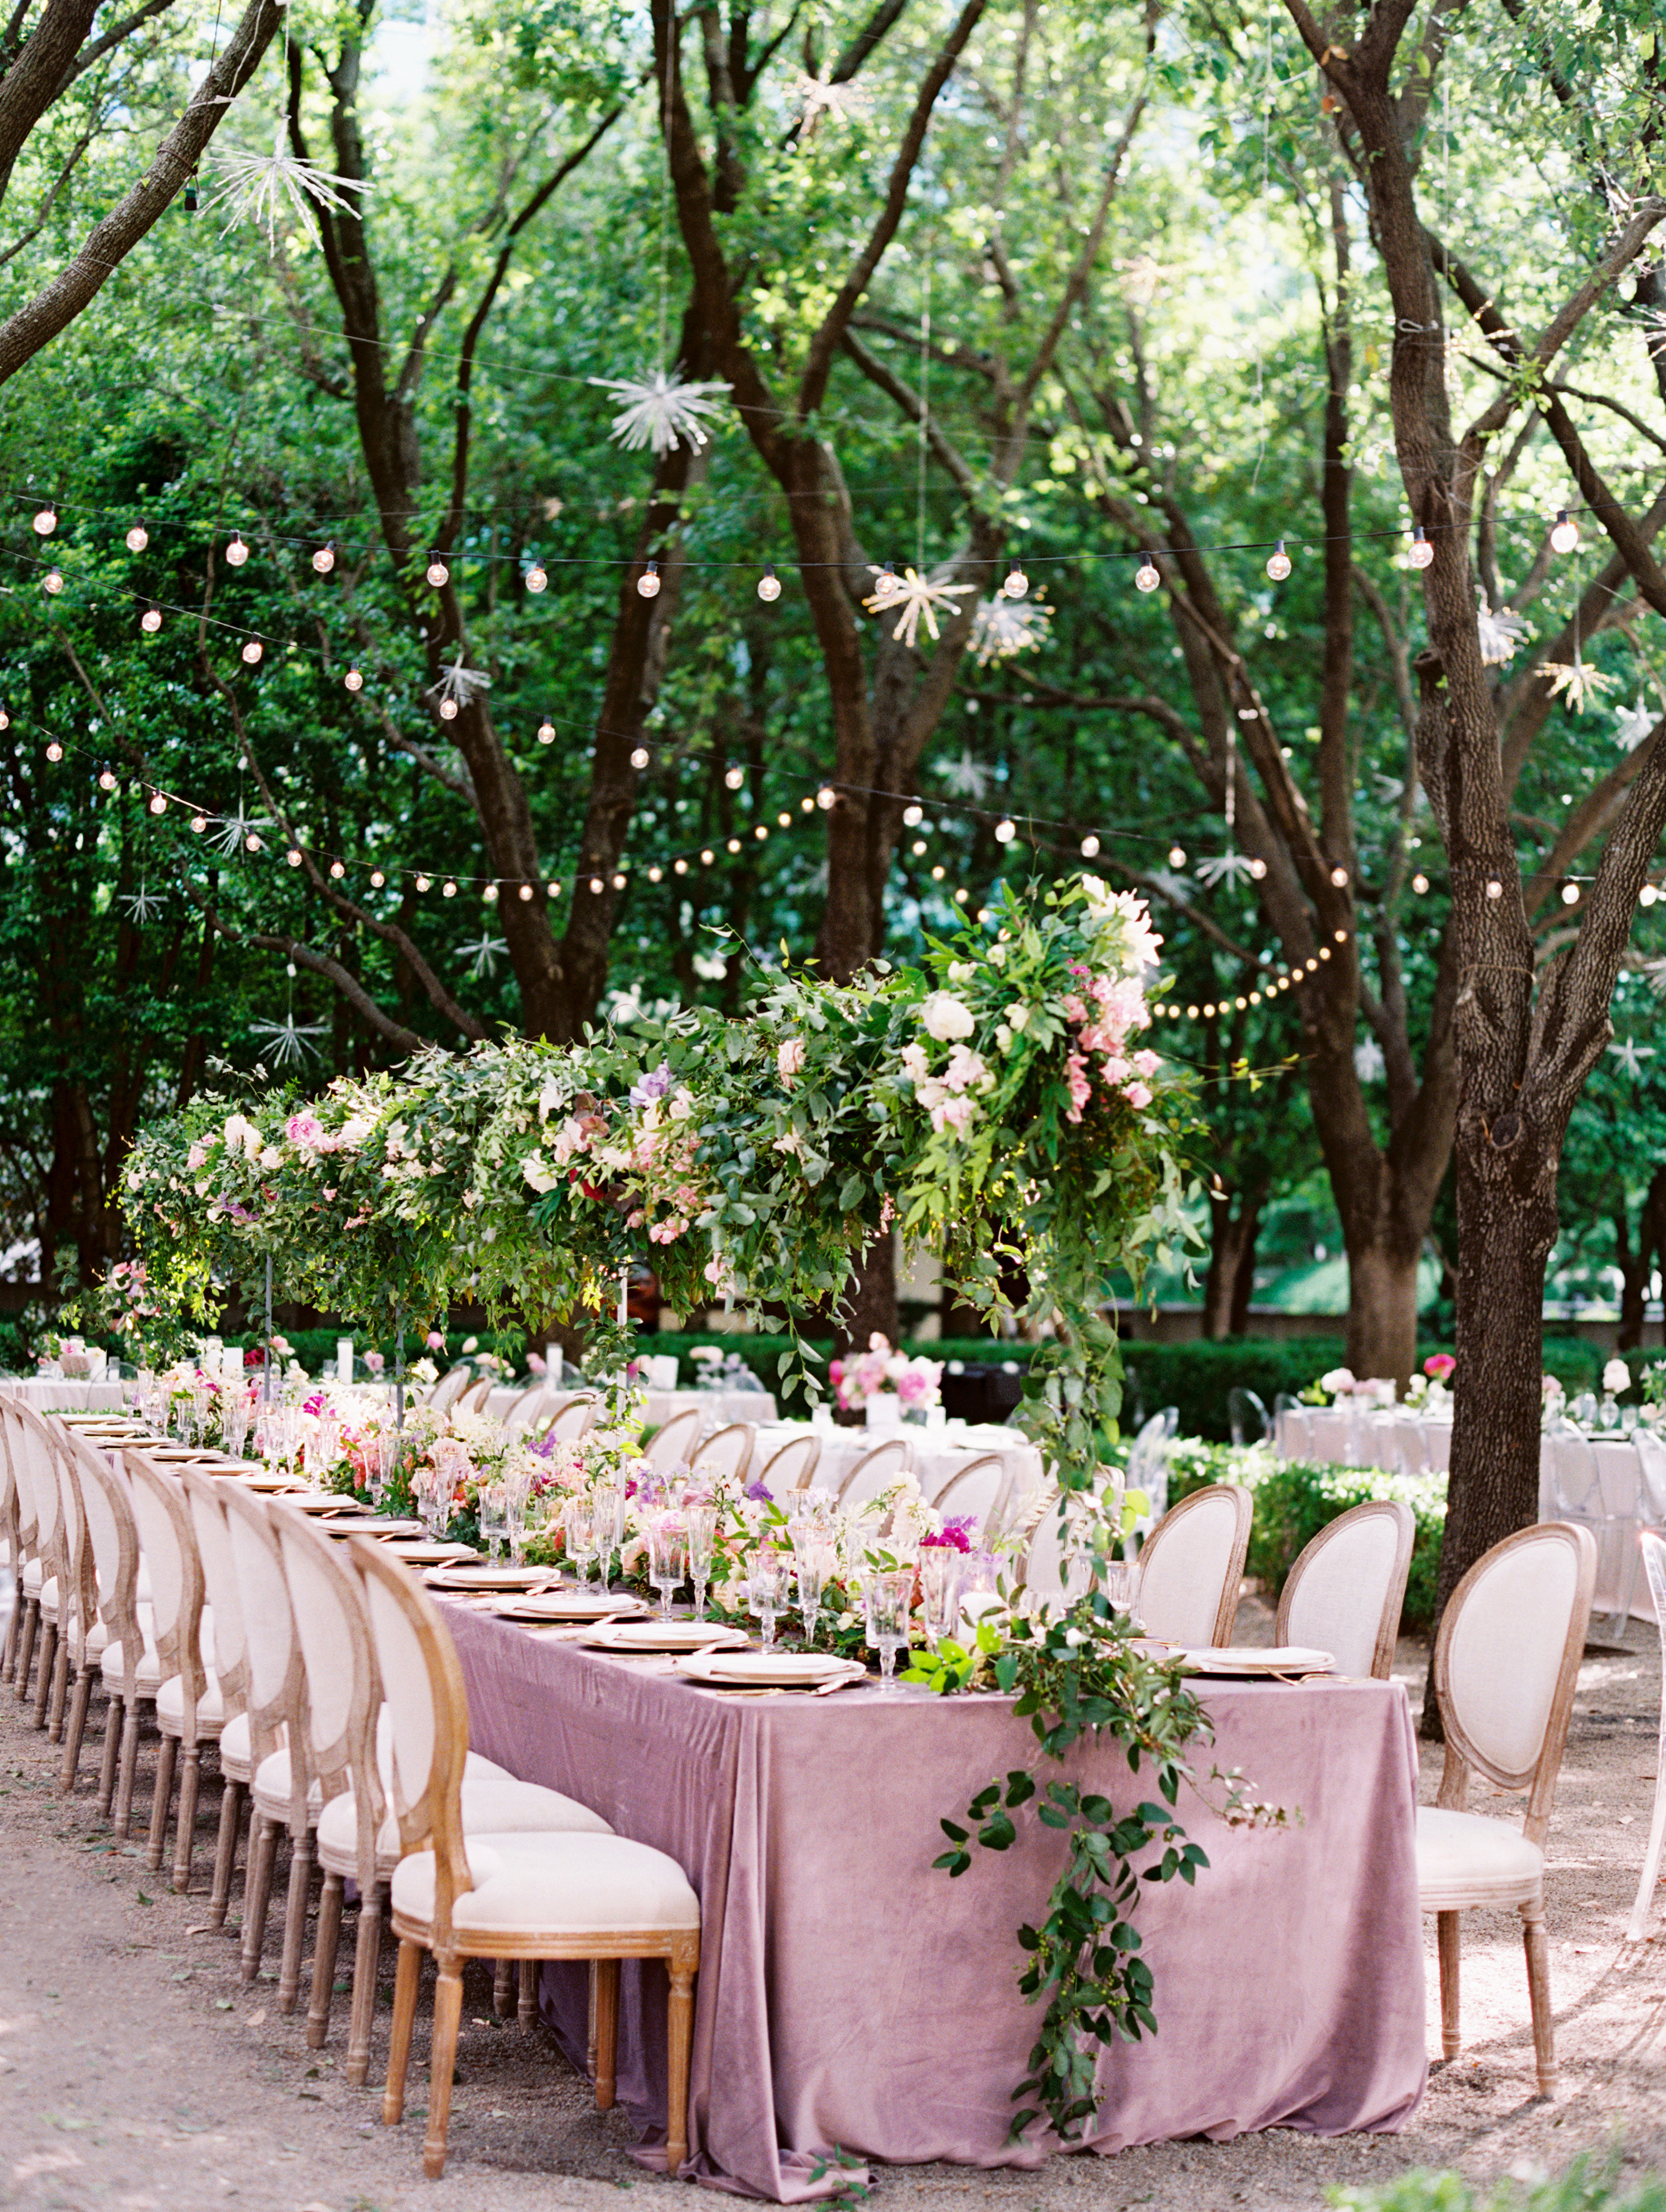 Blakeley-and-Alex-Reception-Ivory-and-Vine.JPG